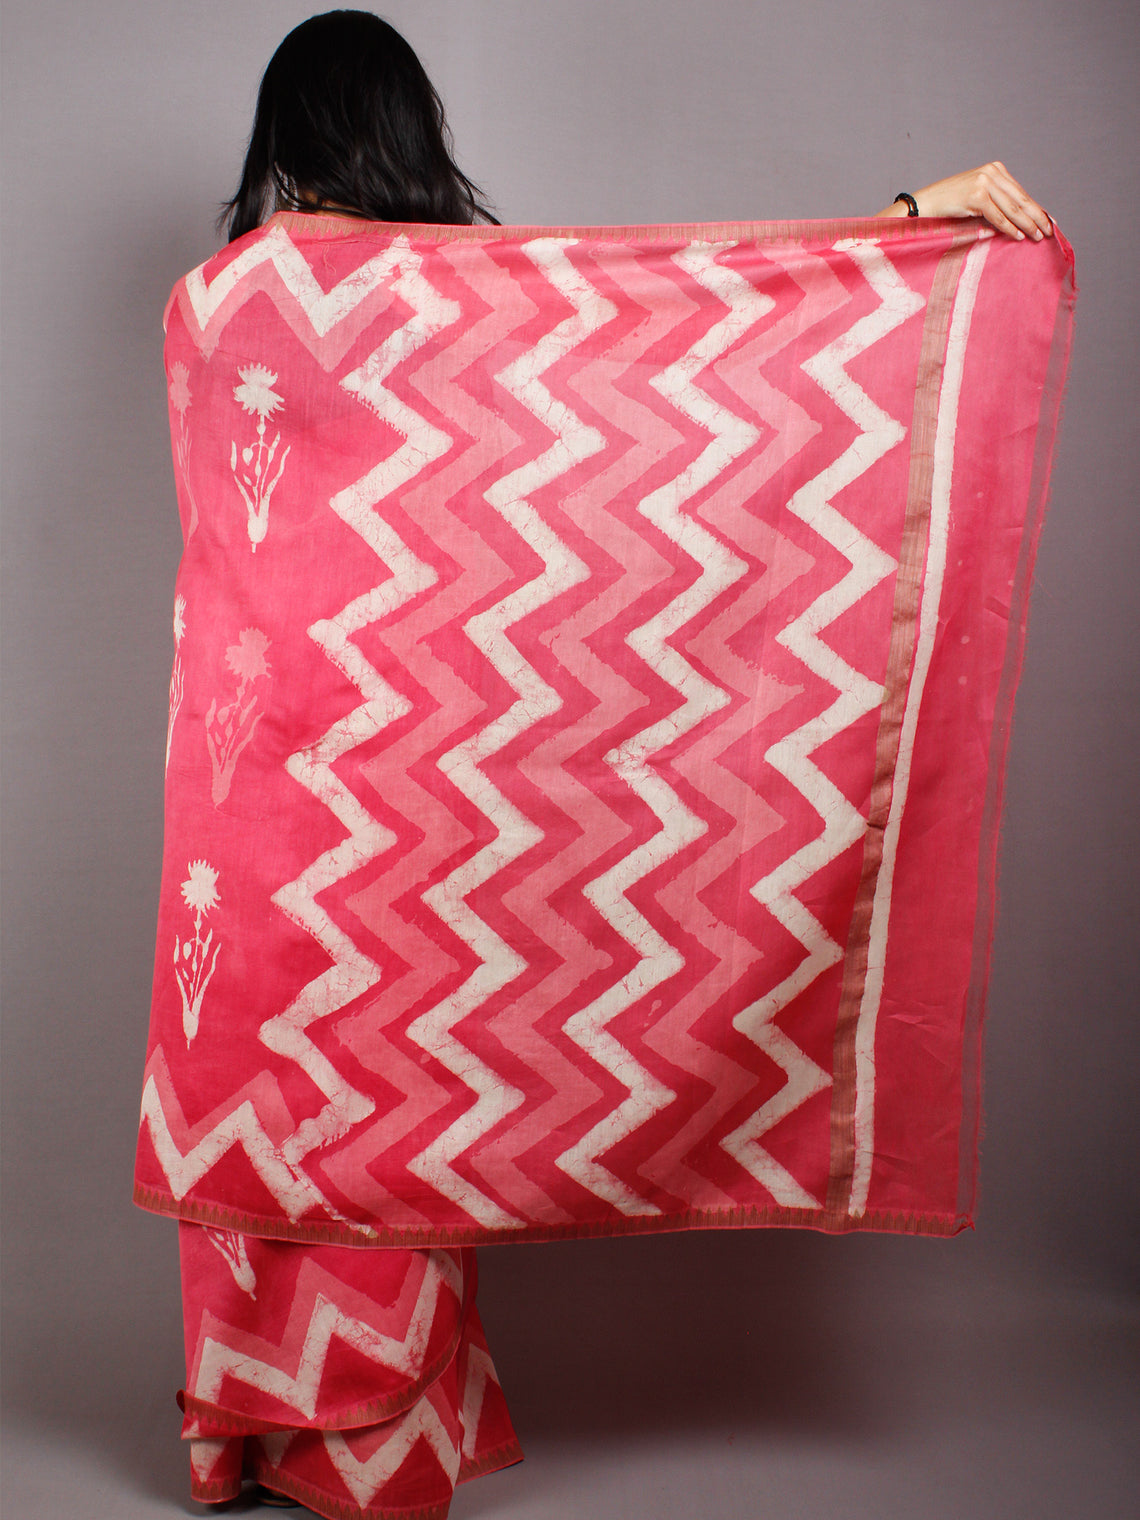 Pink Beige Hand Block Printed in Natural Vegetable Colors Chanderi Saree With Geecha Border - S03170483